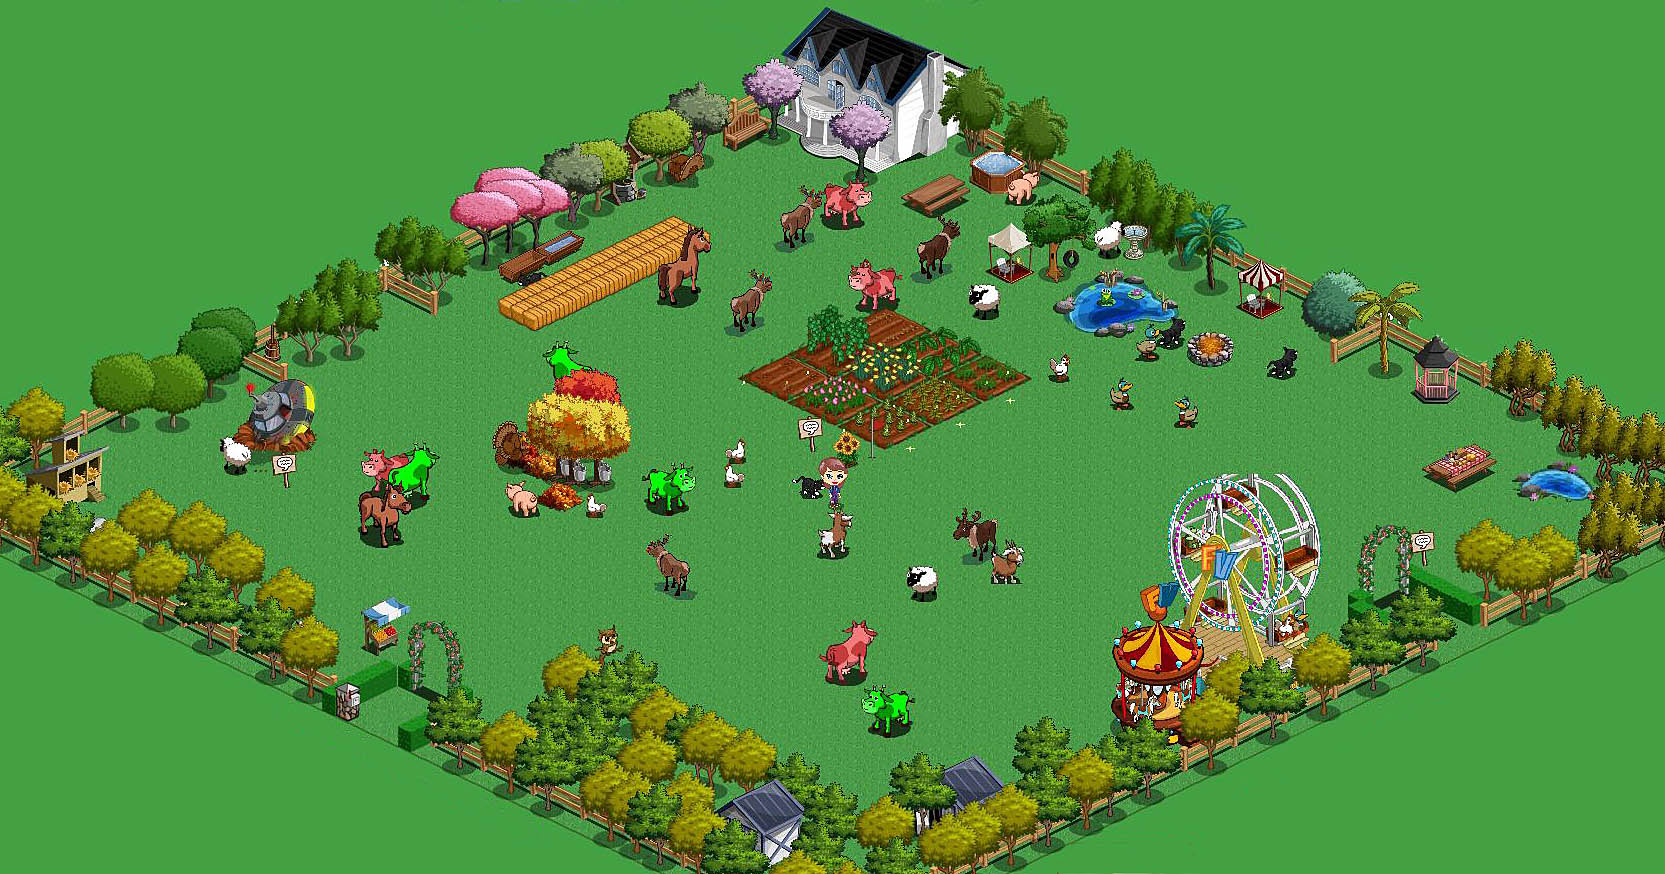 Farmville fantasy farming a spaceship a picture issues amarez feels like home for Form ville